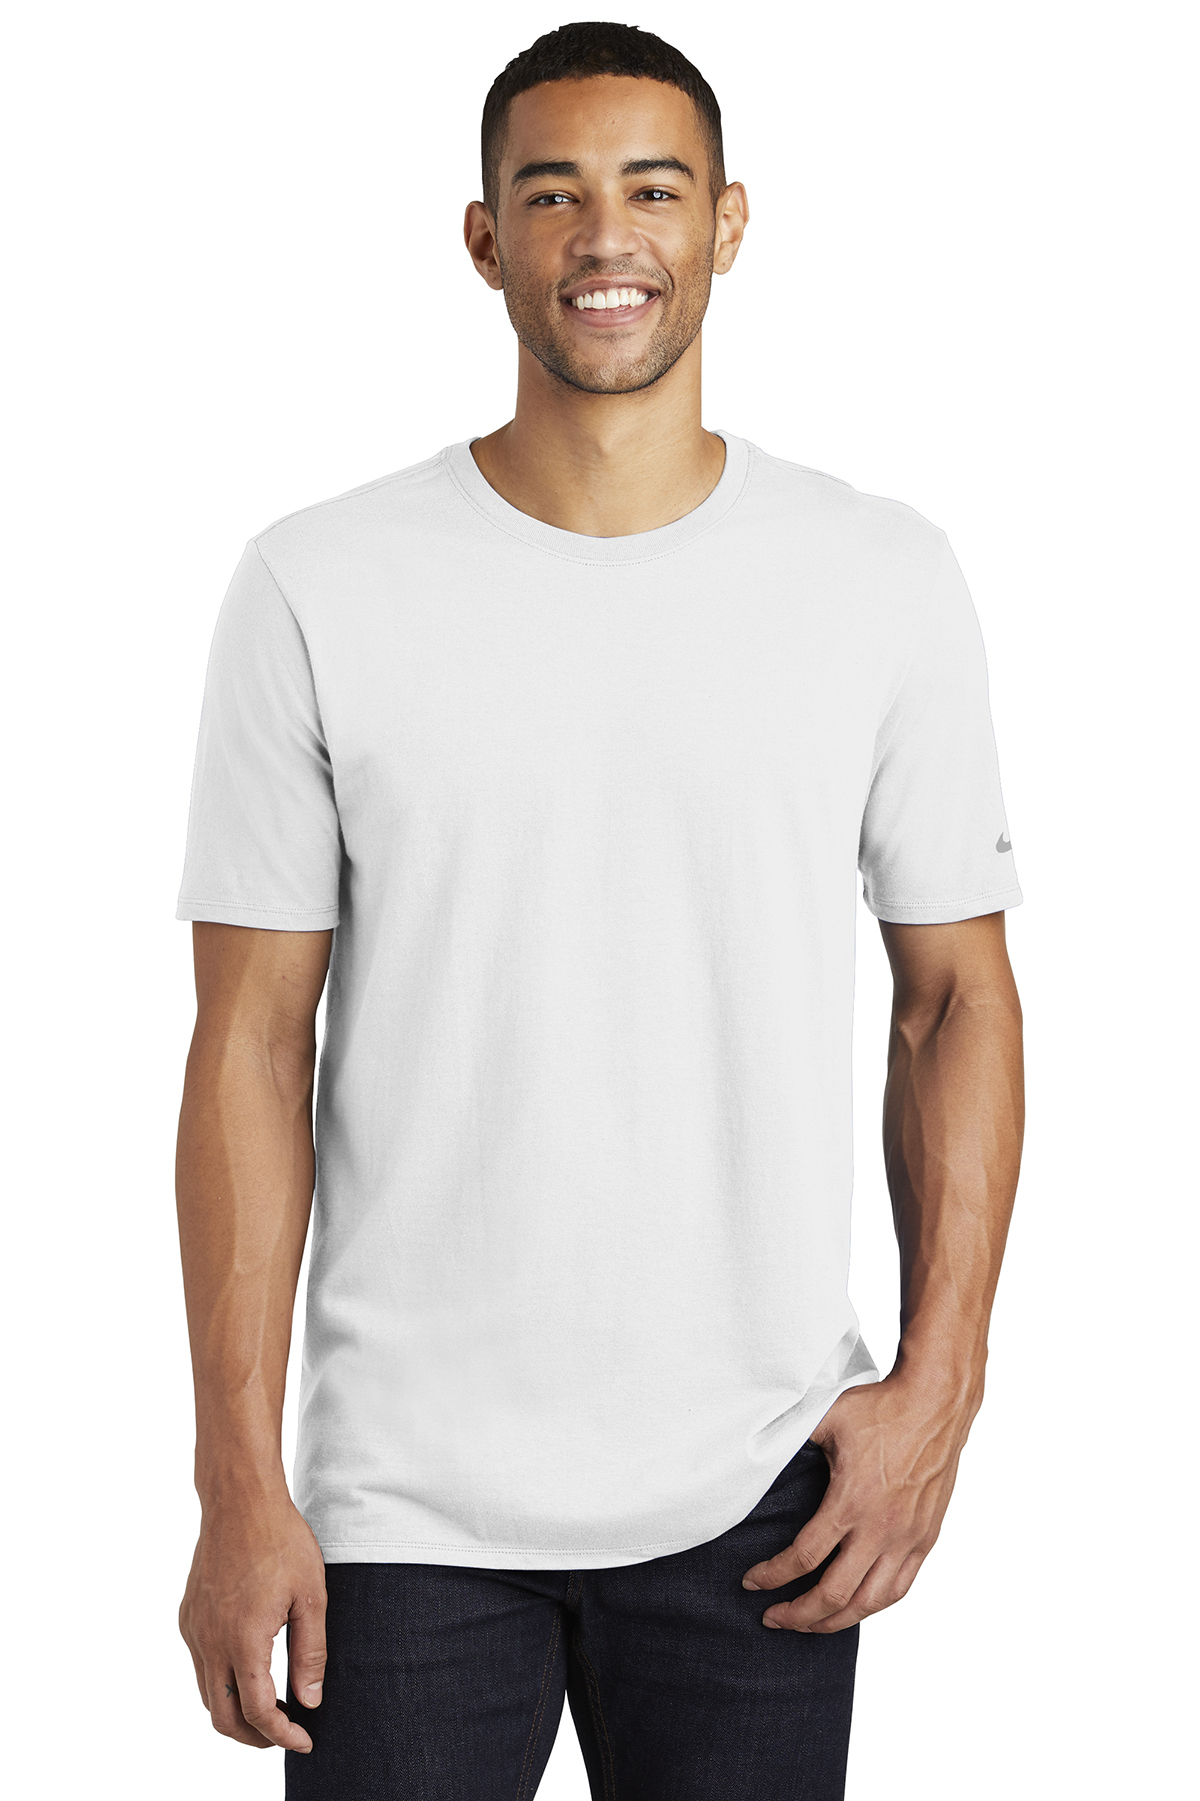 cheaper ece68 b79bb Nike Core Cotton Tee